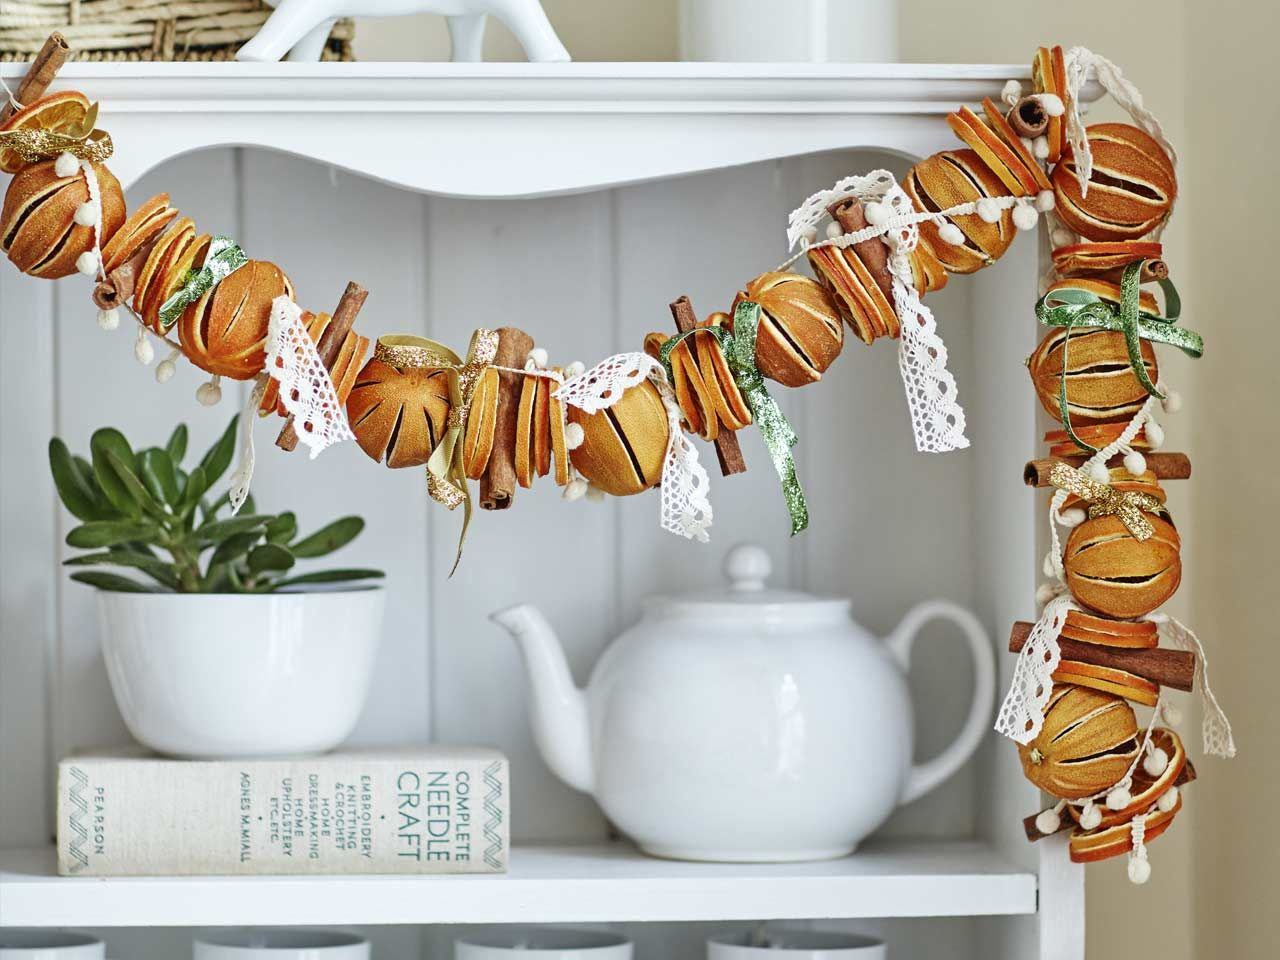 Unique christmas decorations - For A Beautiful And Unique Christmas Decoration Raid The Fruit Bowl And Make This Dried